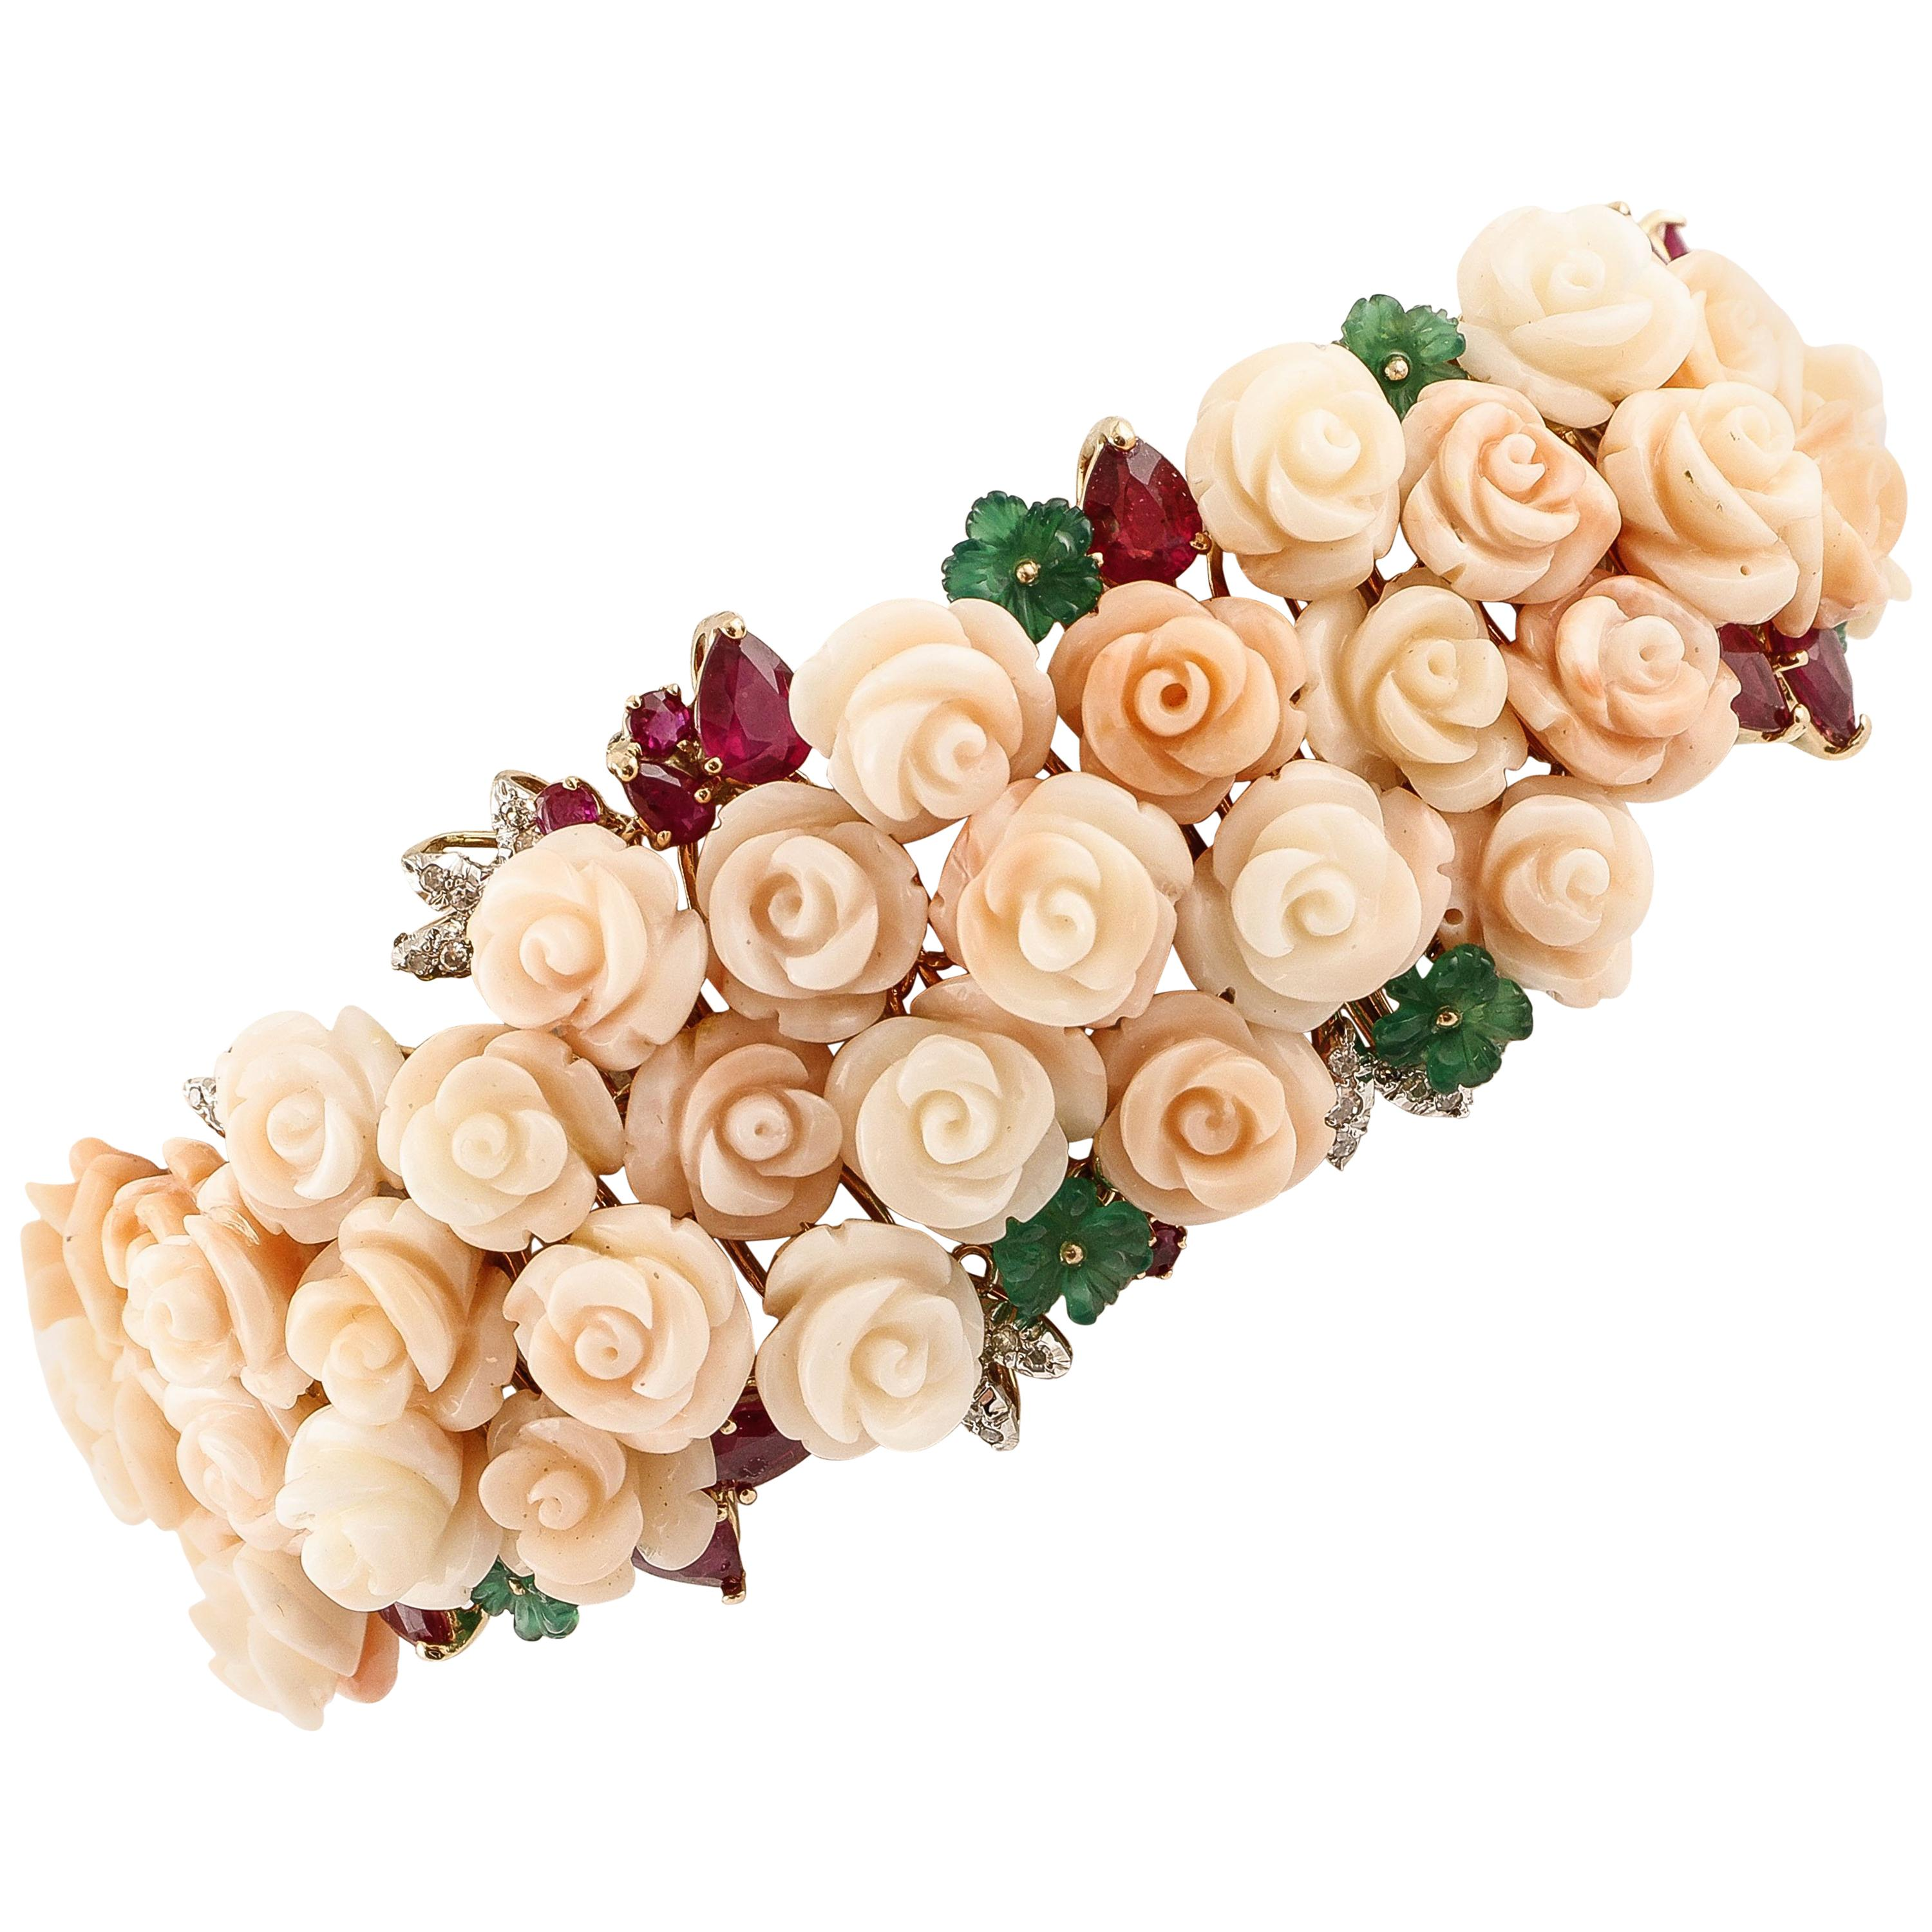 Diamonds, Green Agate, Rubies,Pink Coral Roses,Rose and White Gold Bracelet